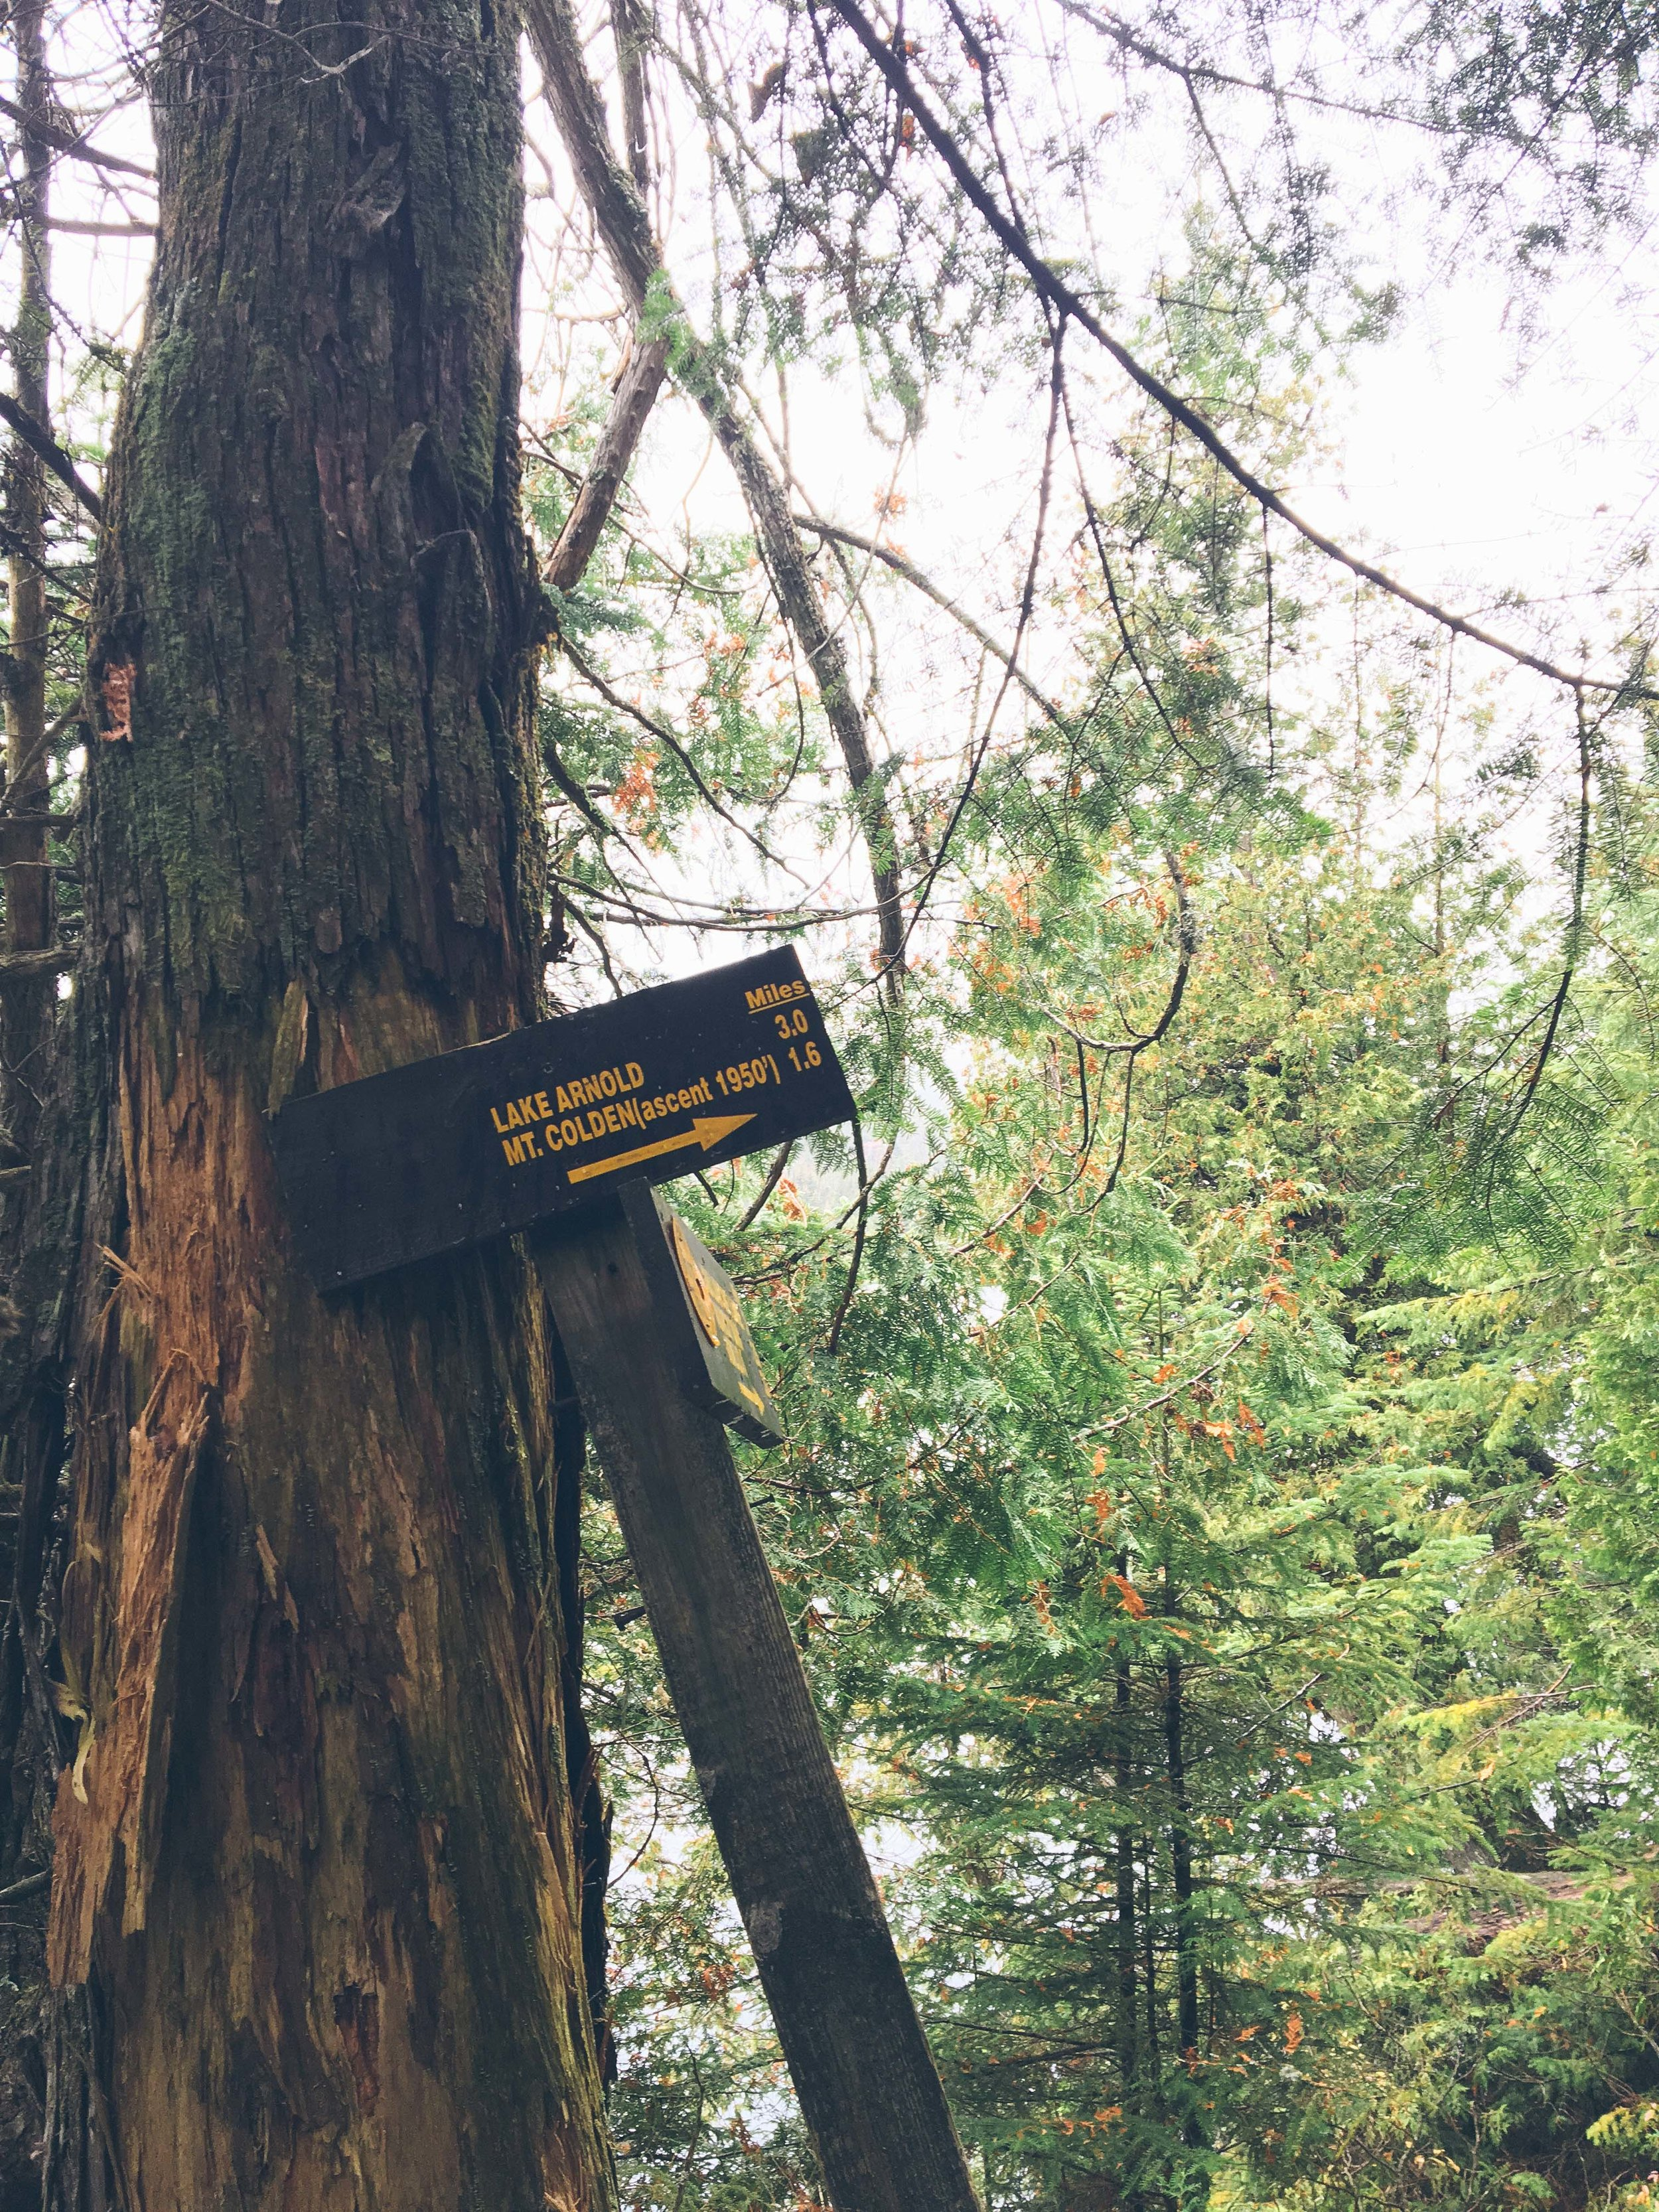 Mt. Colden The Adirondacks Misery Mile | Mountain Things